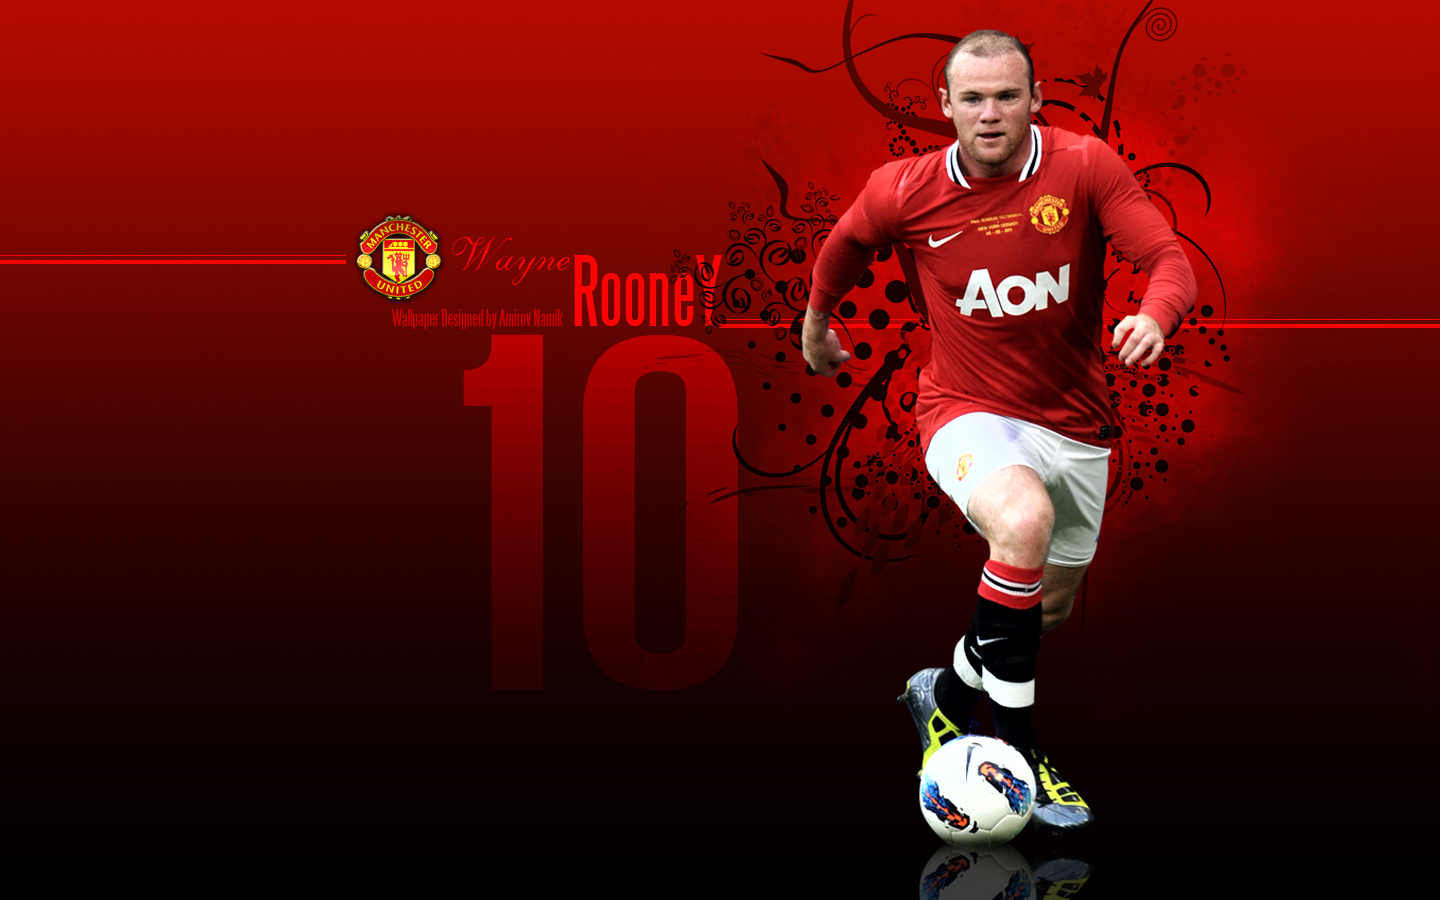 Wayne Rooney Wallpaper Wayne Rooney New HD Wallpapers